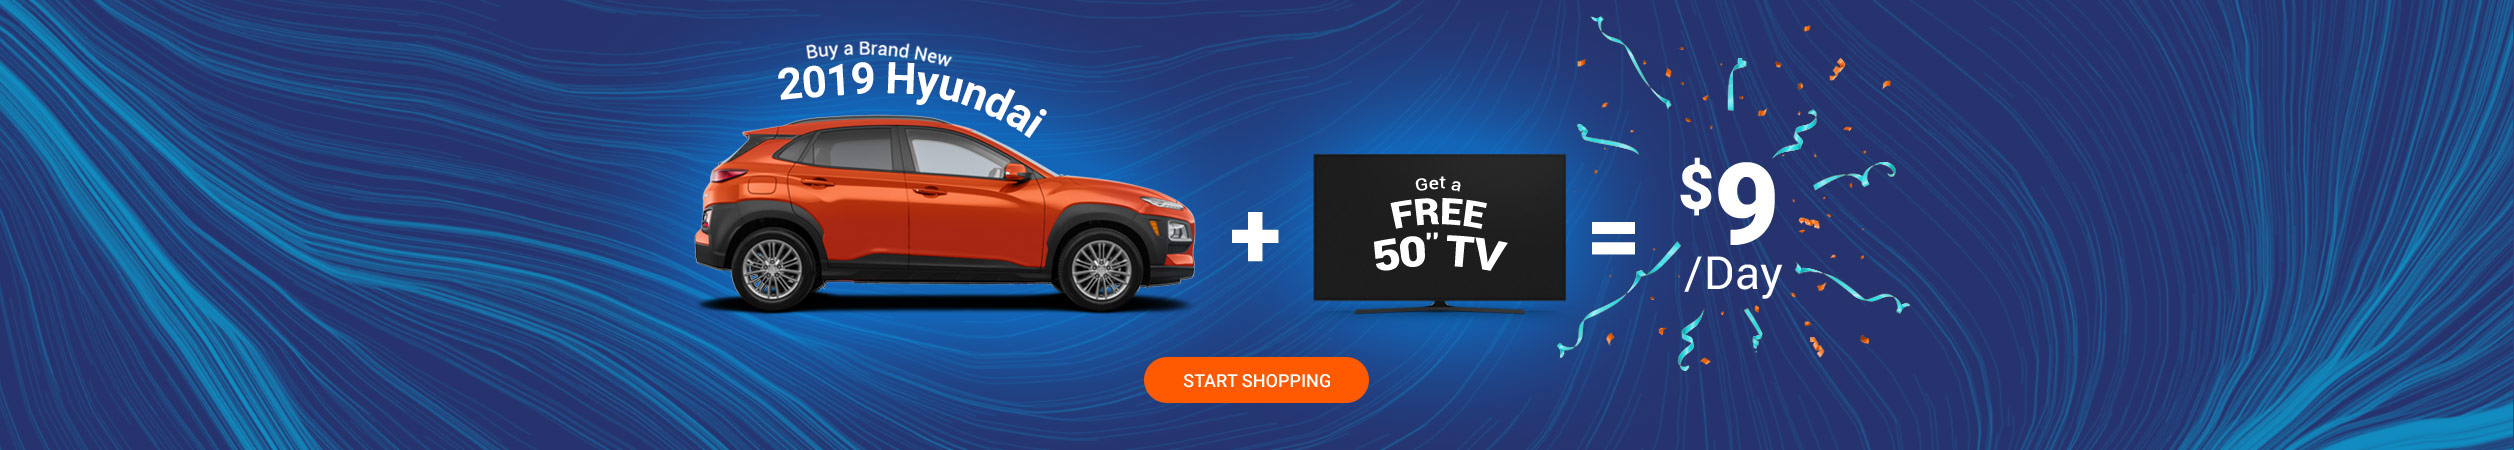 Go Hyundai Free TV Offer